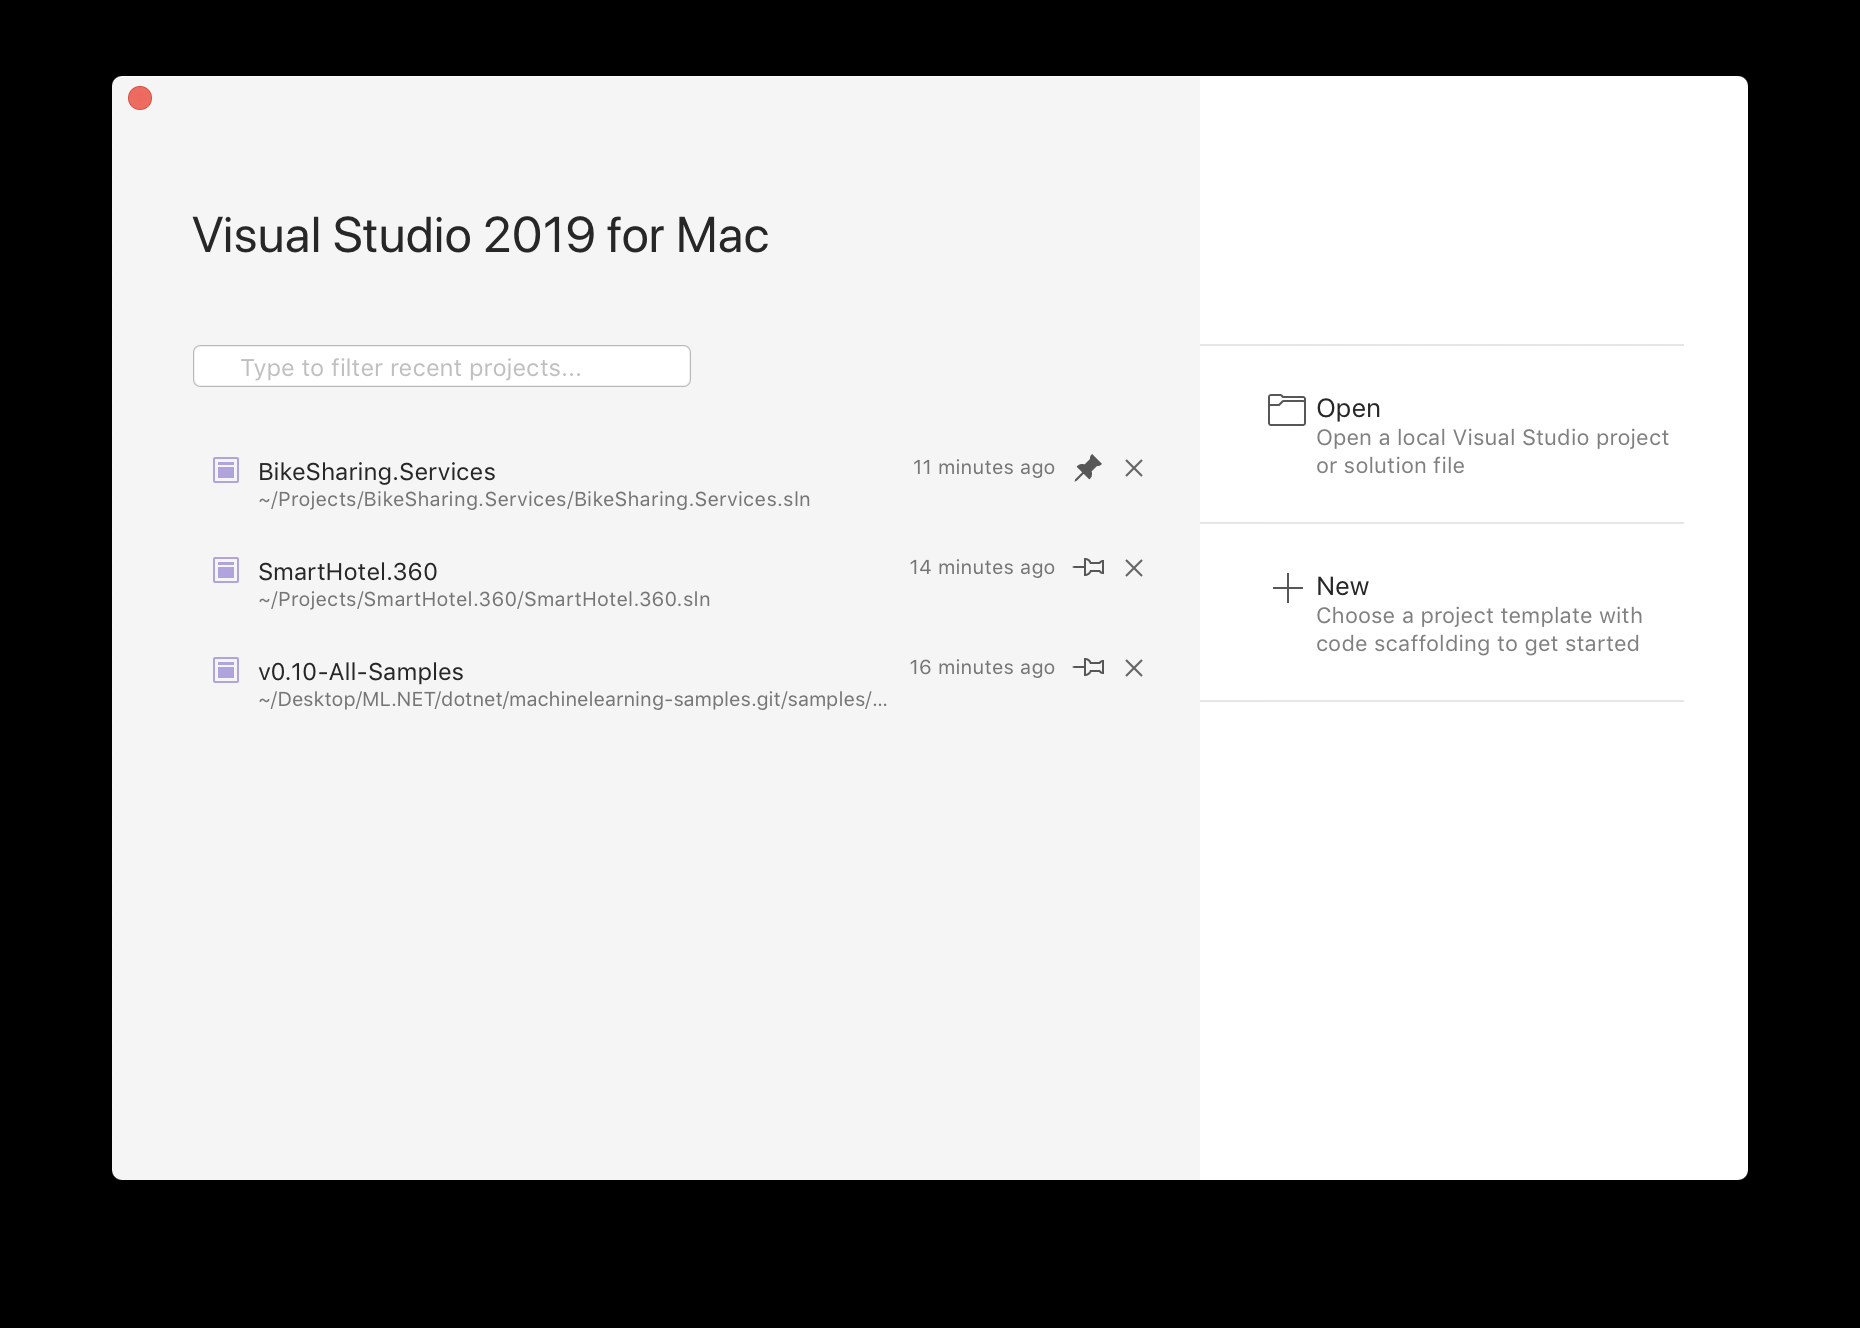 Microsoft Office Mac Fr Visual Studio 2019 For Mac Is Now Available The Visual Studio Blog